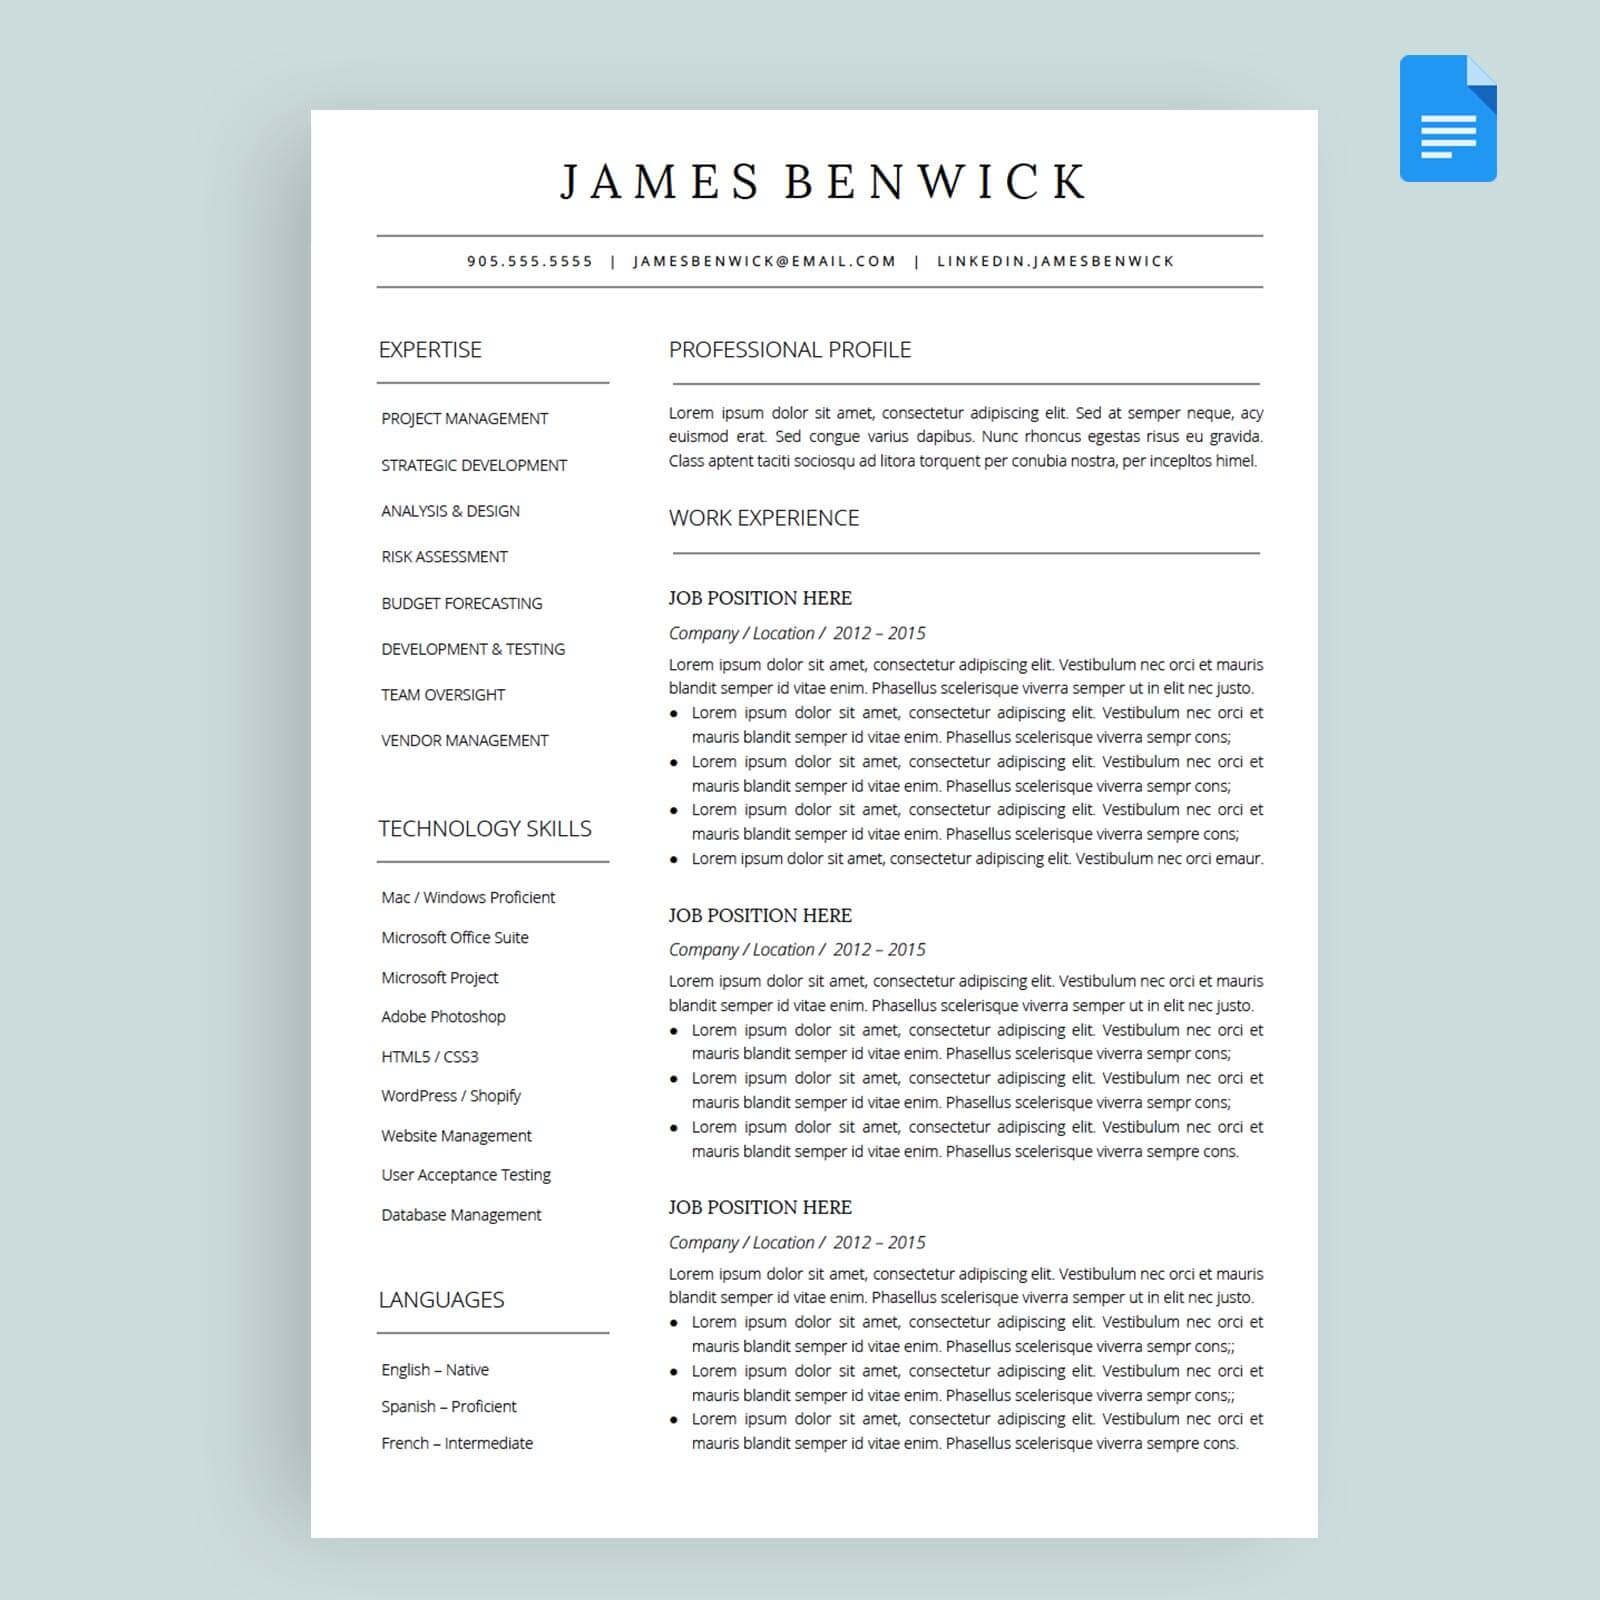 Benwick Resume Cv Template Package For Google Docs